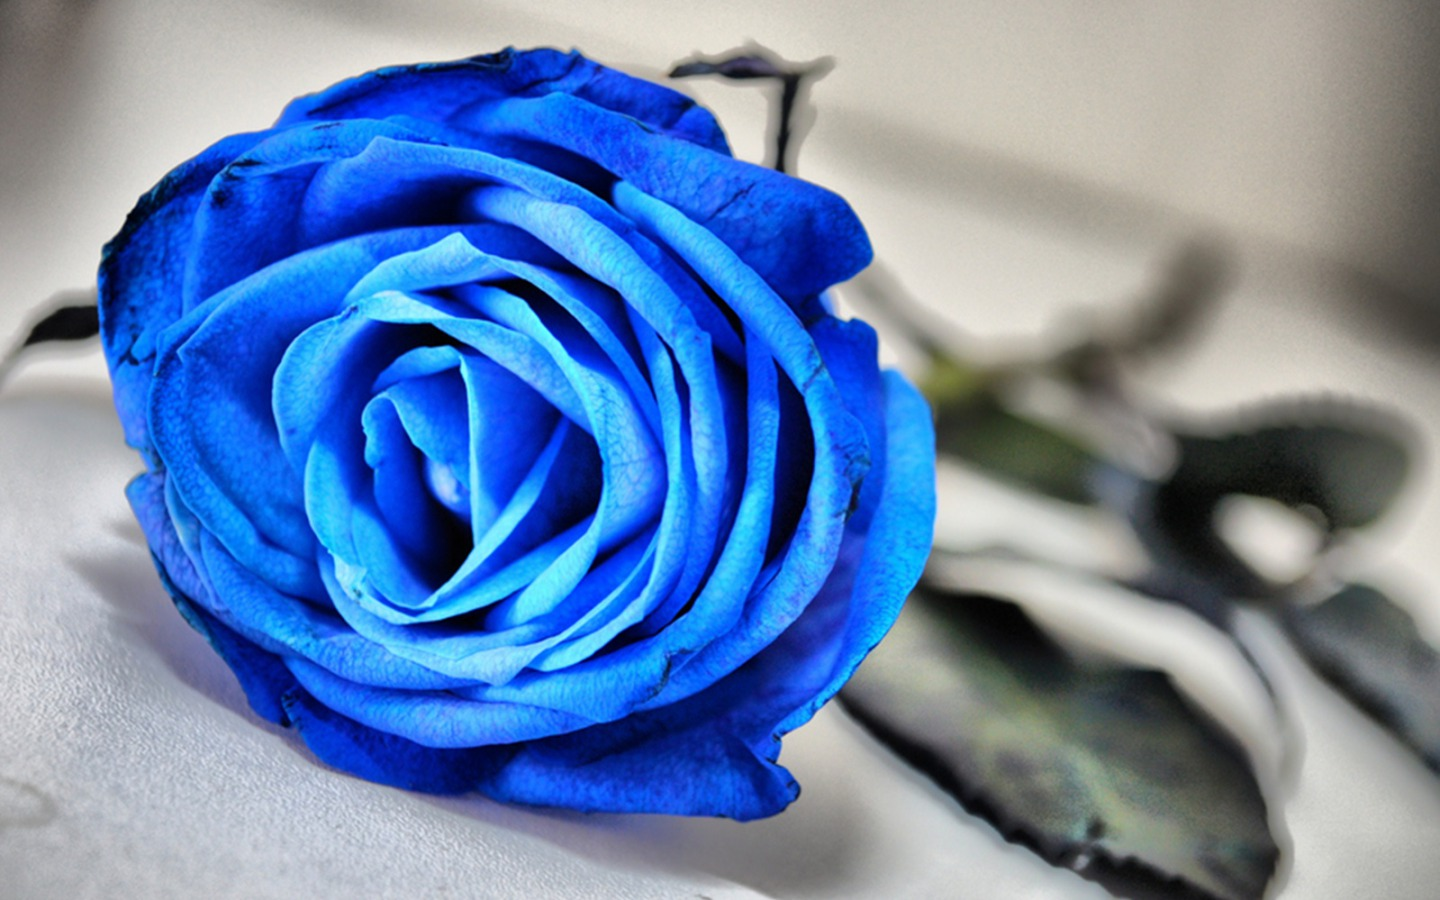 flowers images blue rose hd wallpaper and background photos (33341025)